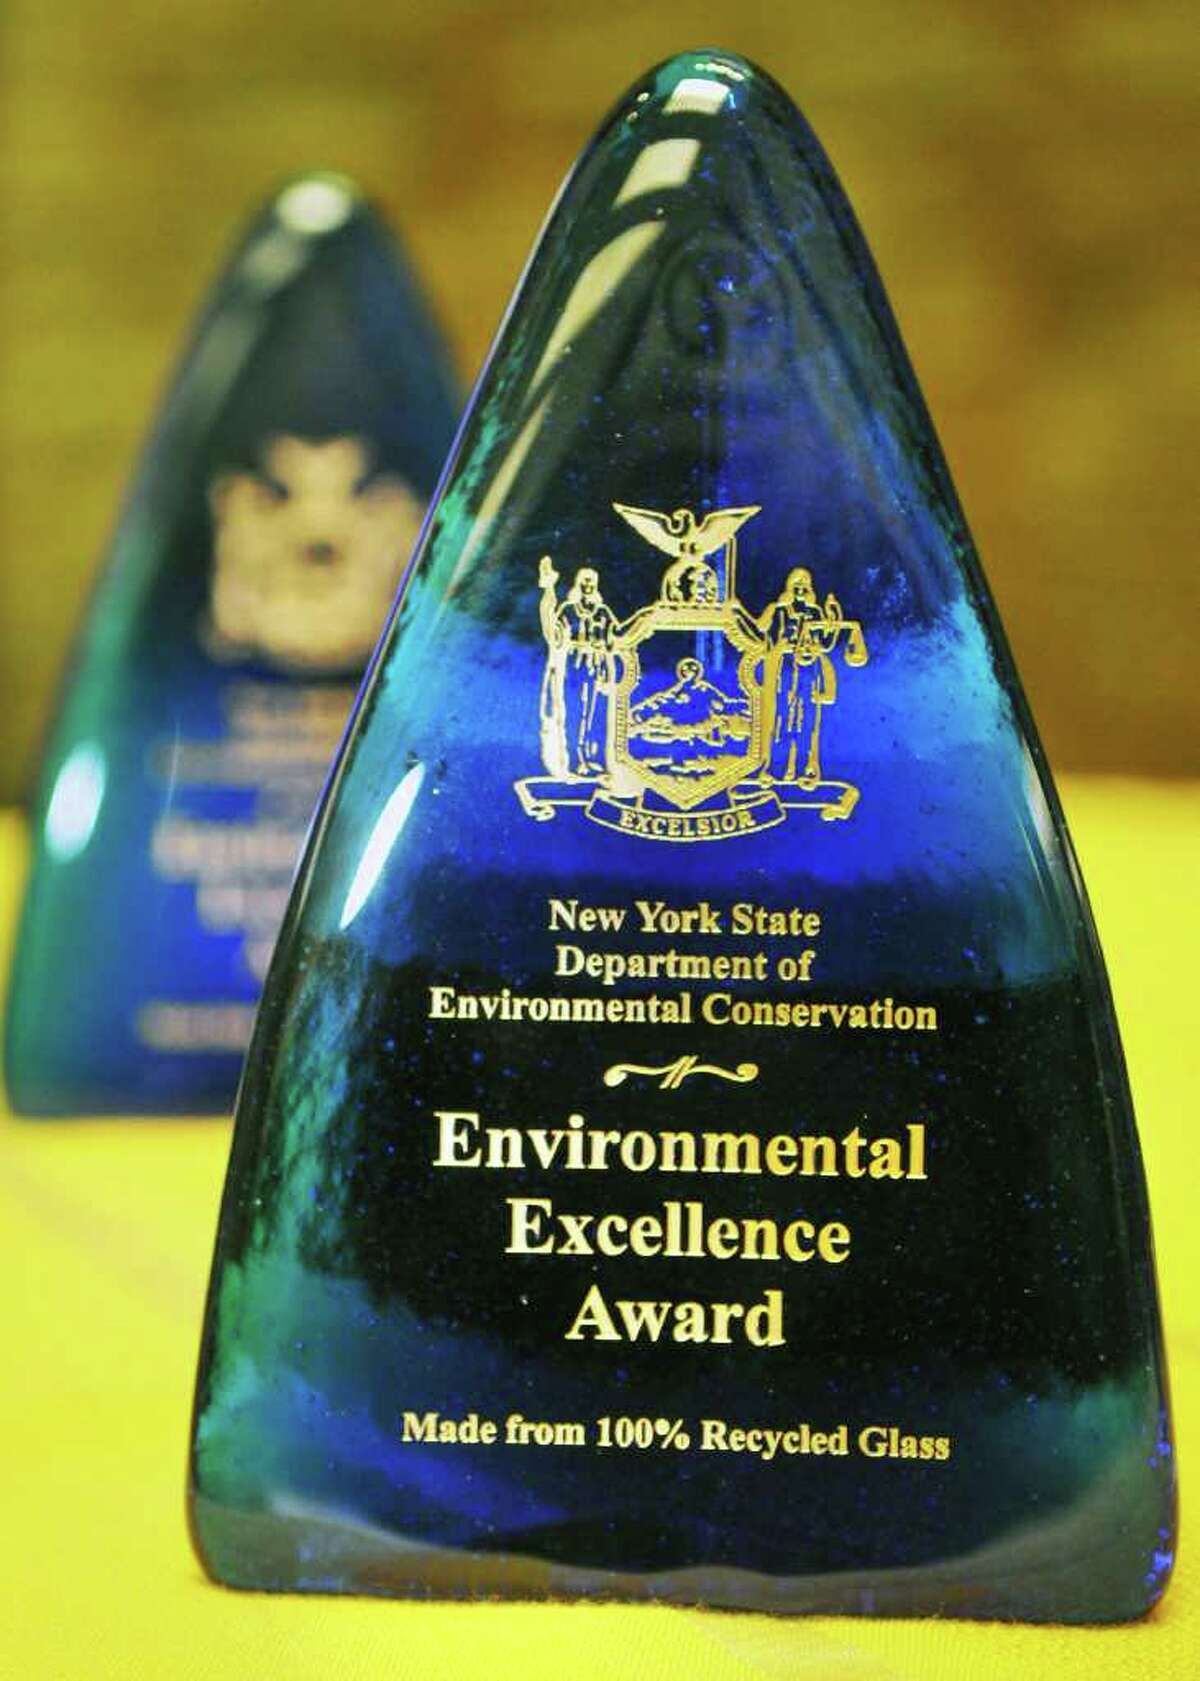 Awards at the New York State Department of Environmental Conservation's 8th Annual New York State Environmental Excellence Awards ceremony at the Capitol Tuesday Dec. 6, 2011. (John Carl D'Annibale / Times Union)